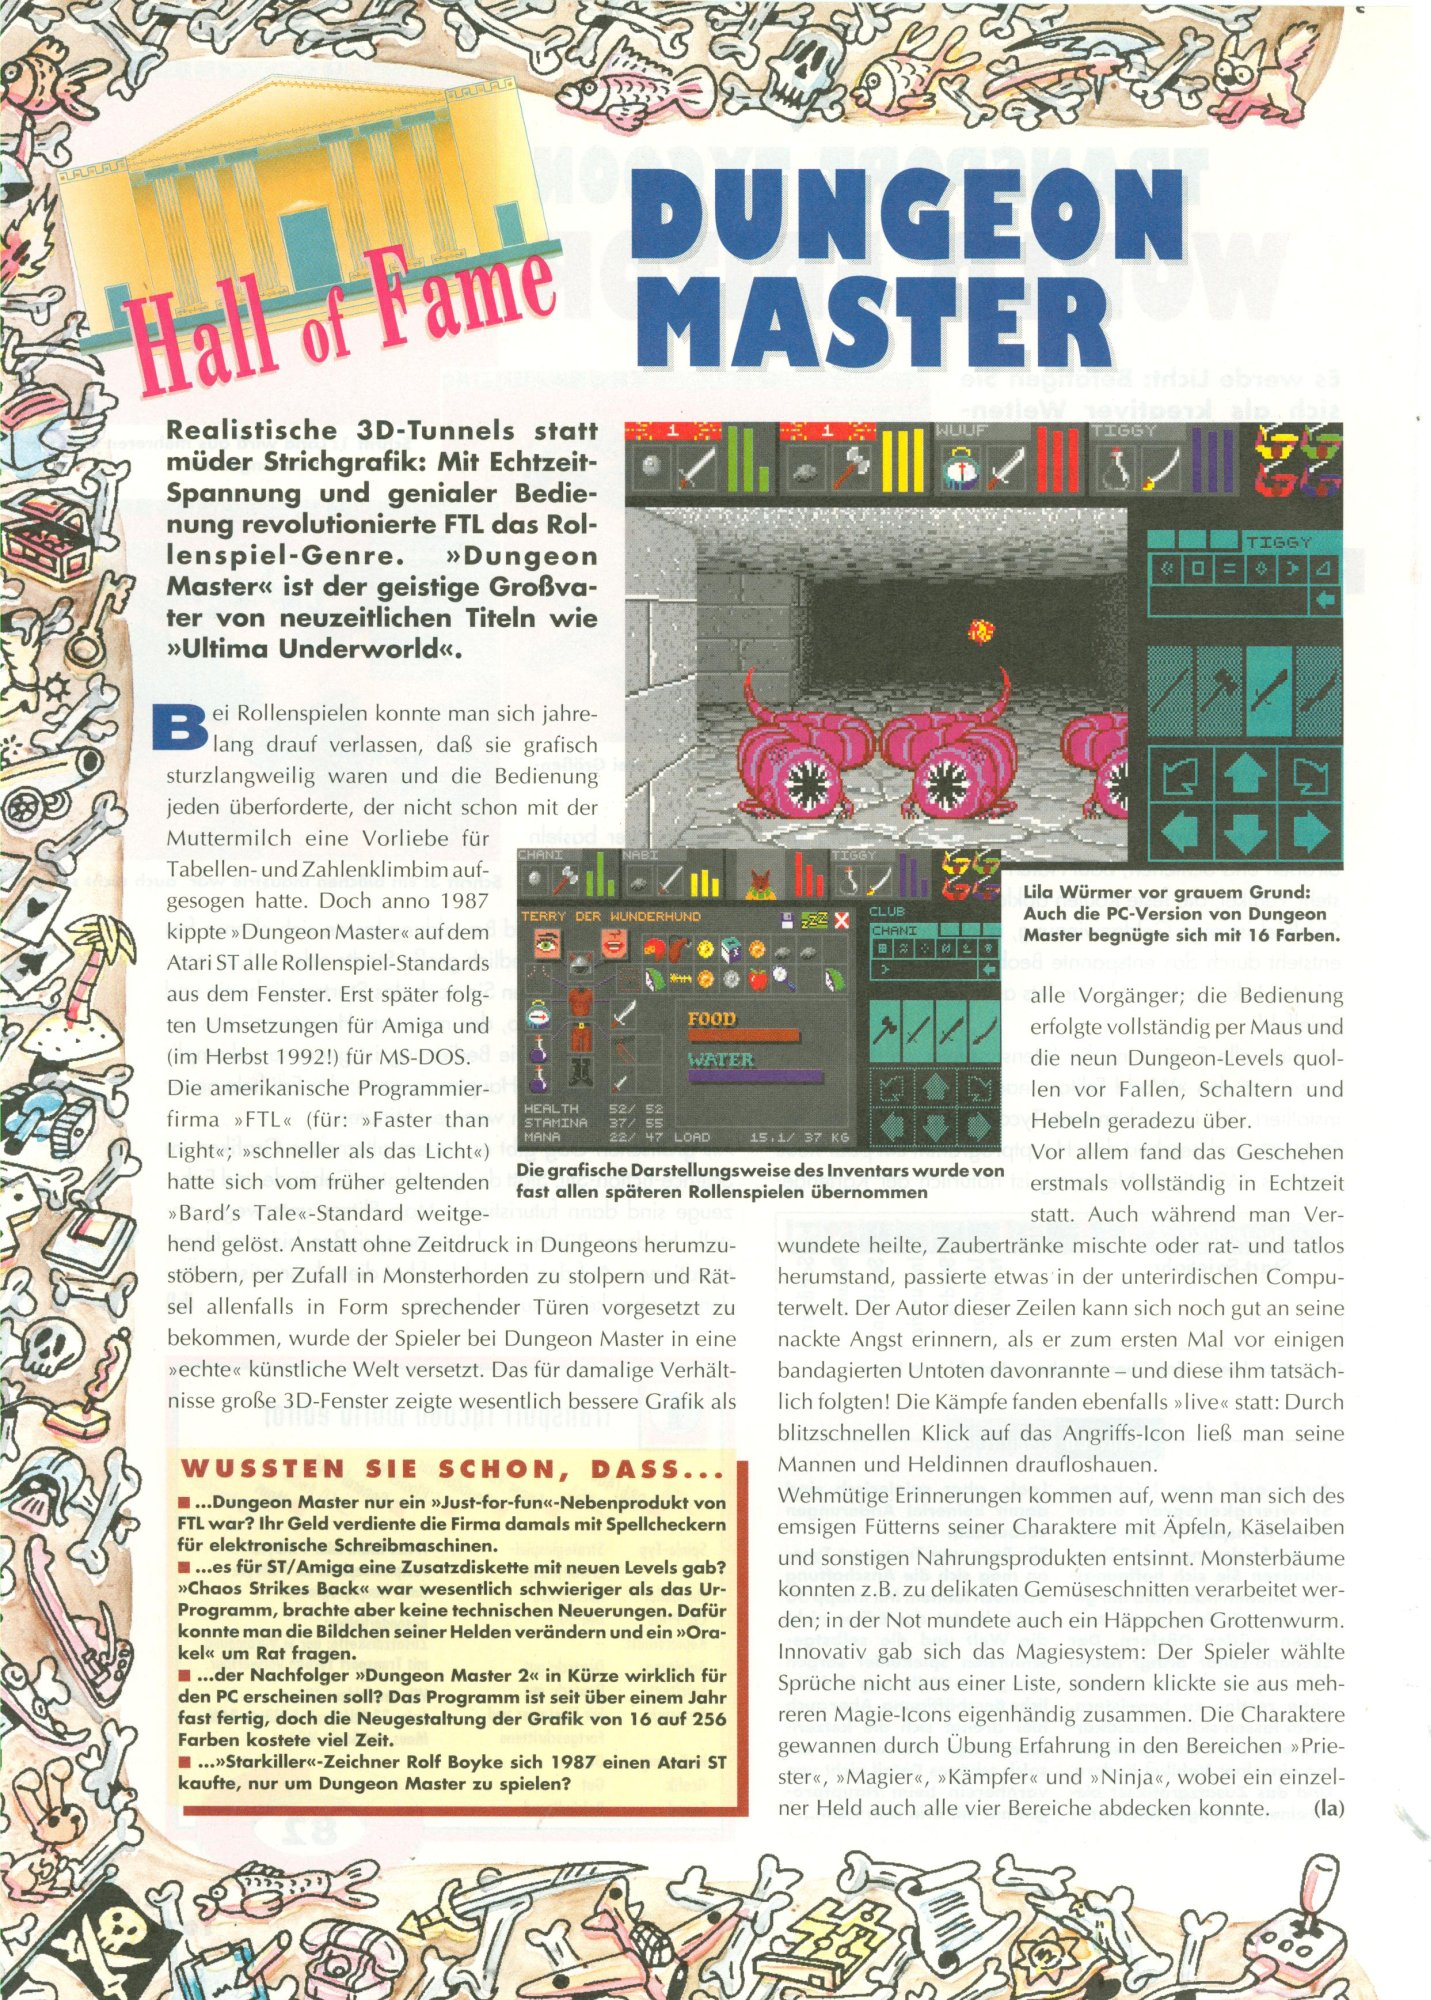 Dungeon Master for PC Review published in German magazine 'PC Player', April 1995, Page 104